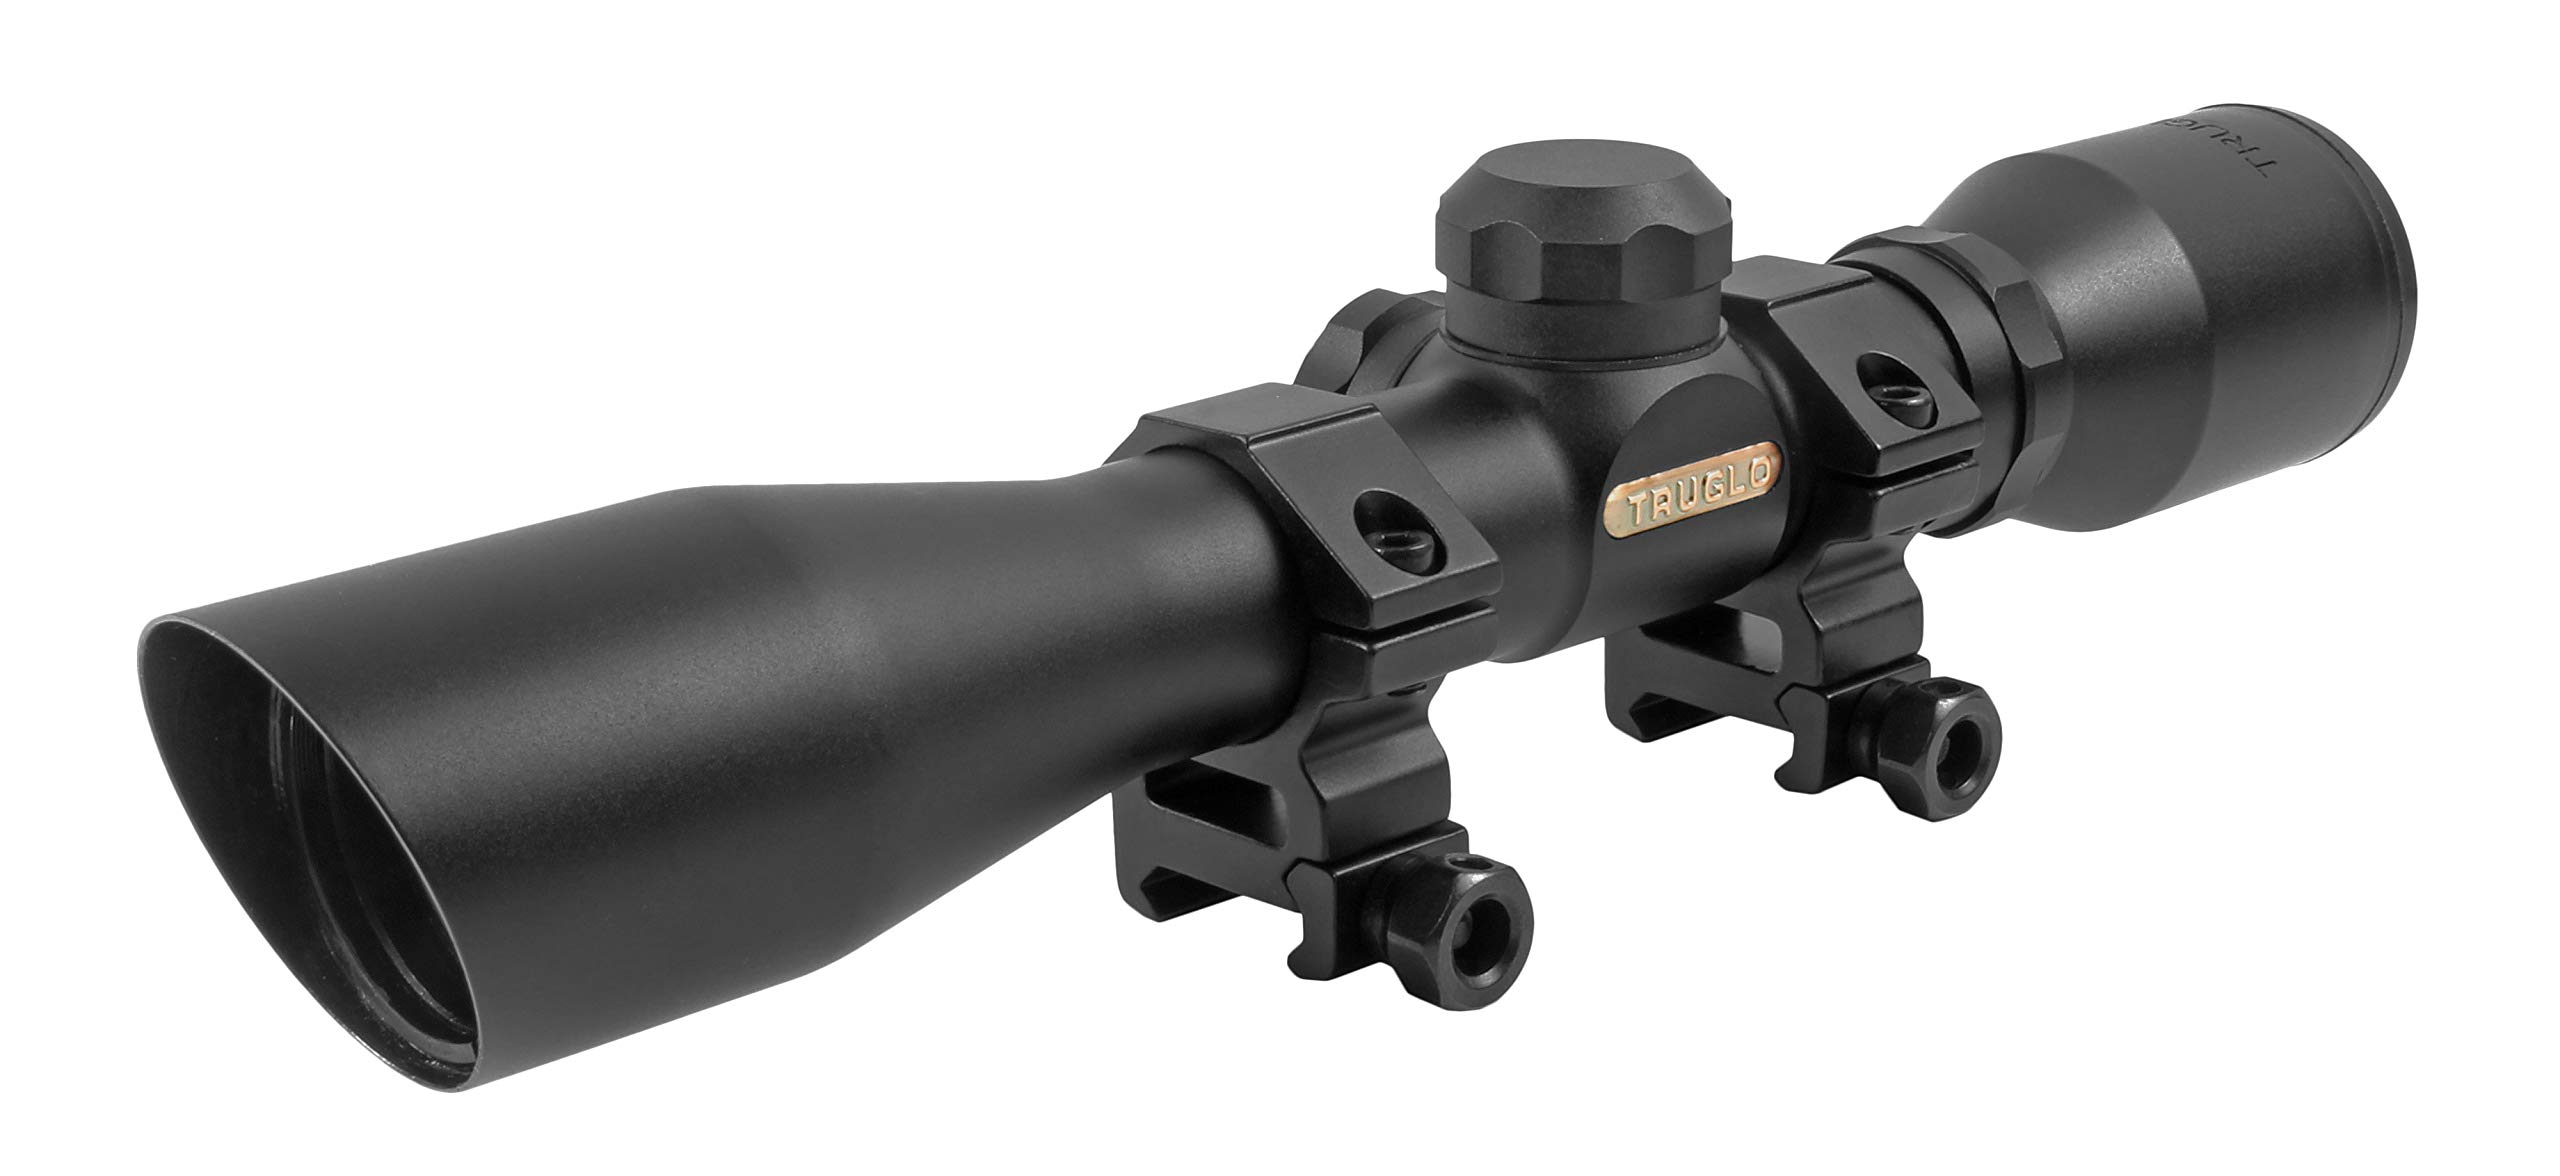 TRUGLO 4x32mm Compact Rimfire and Shotgun Scope Series, Diamond Reticle, Black by TRUGLO